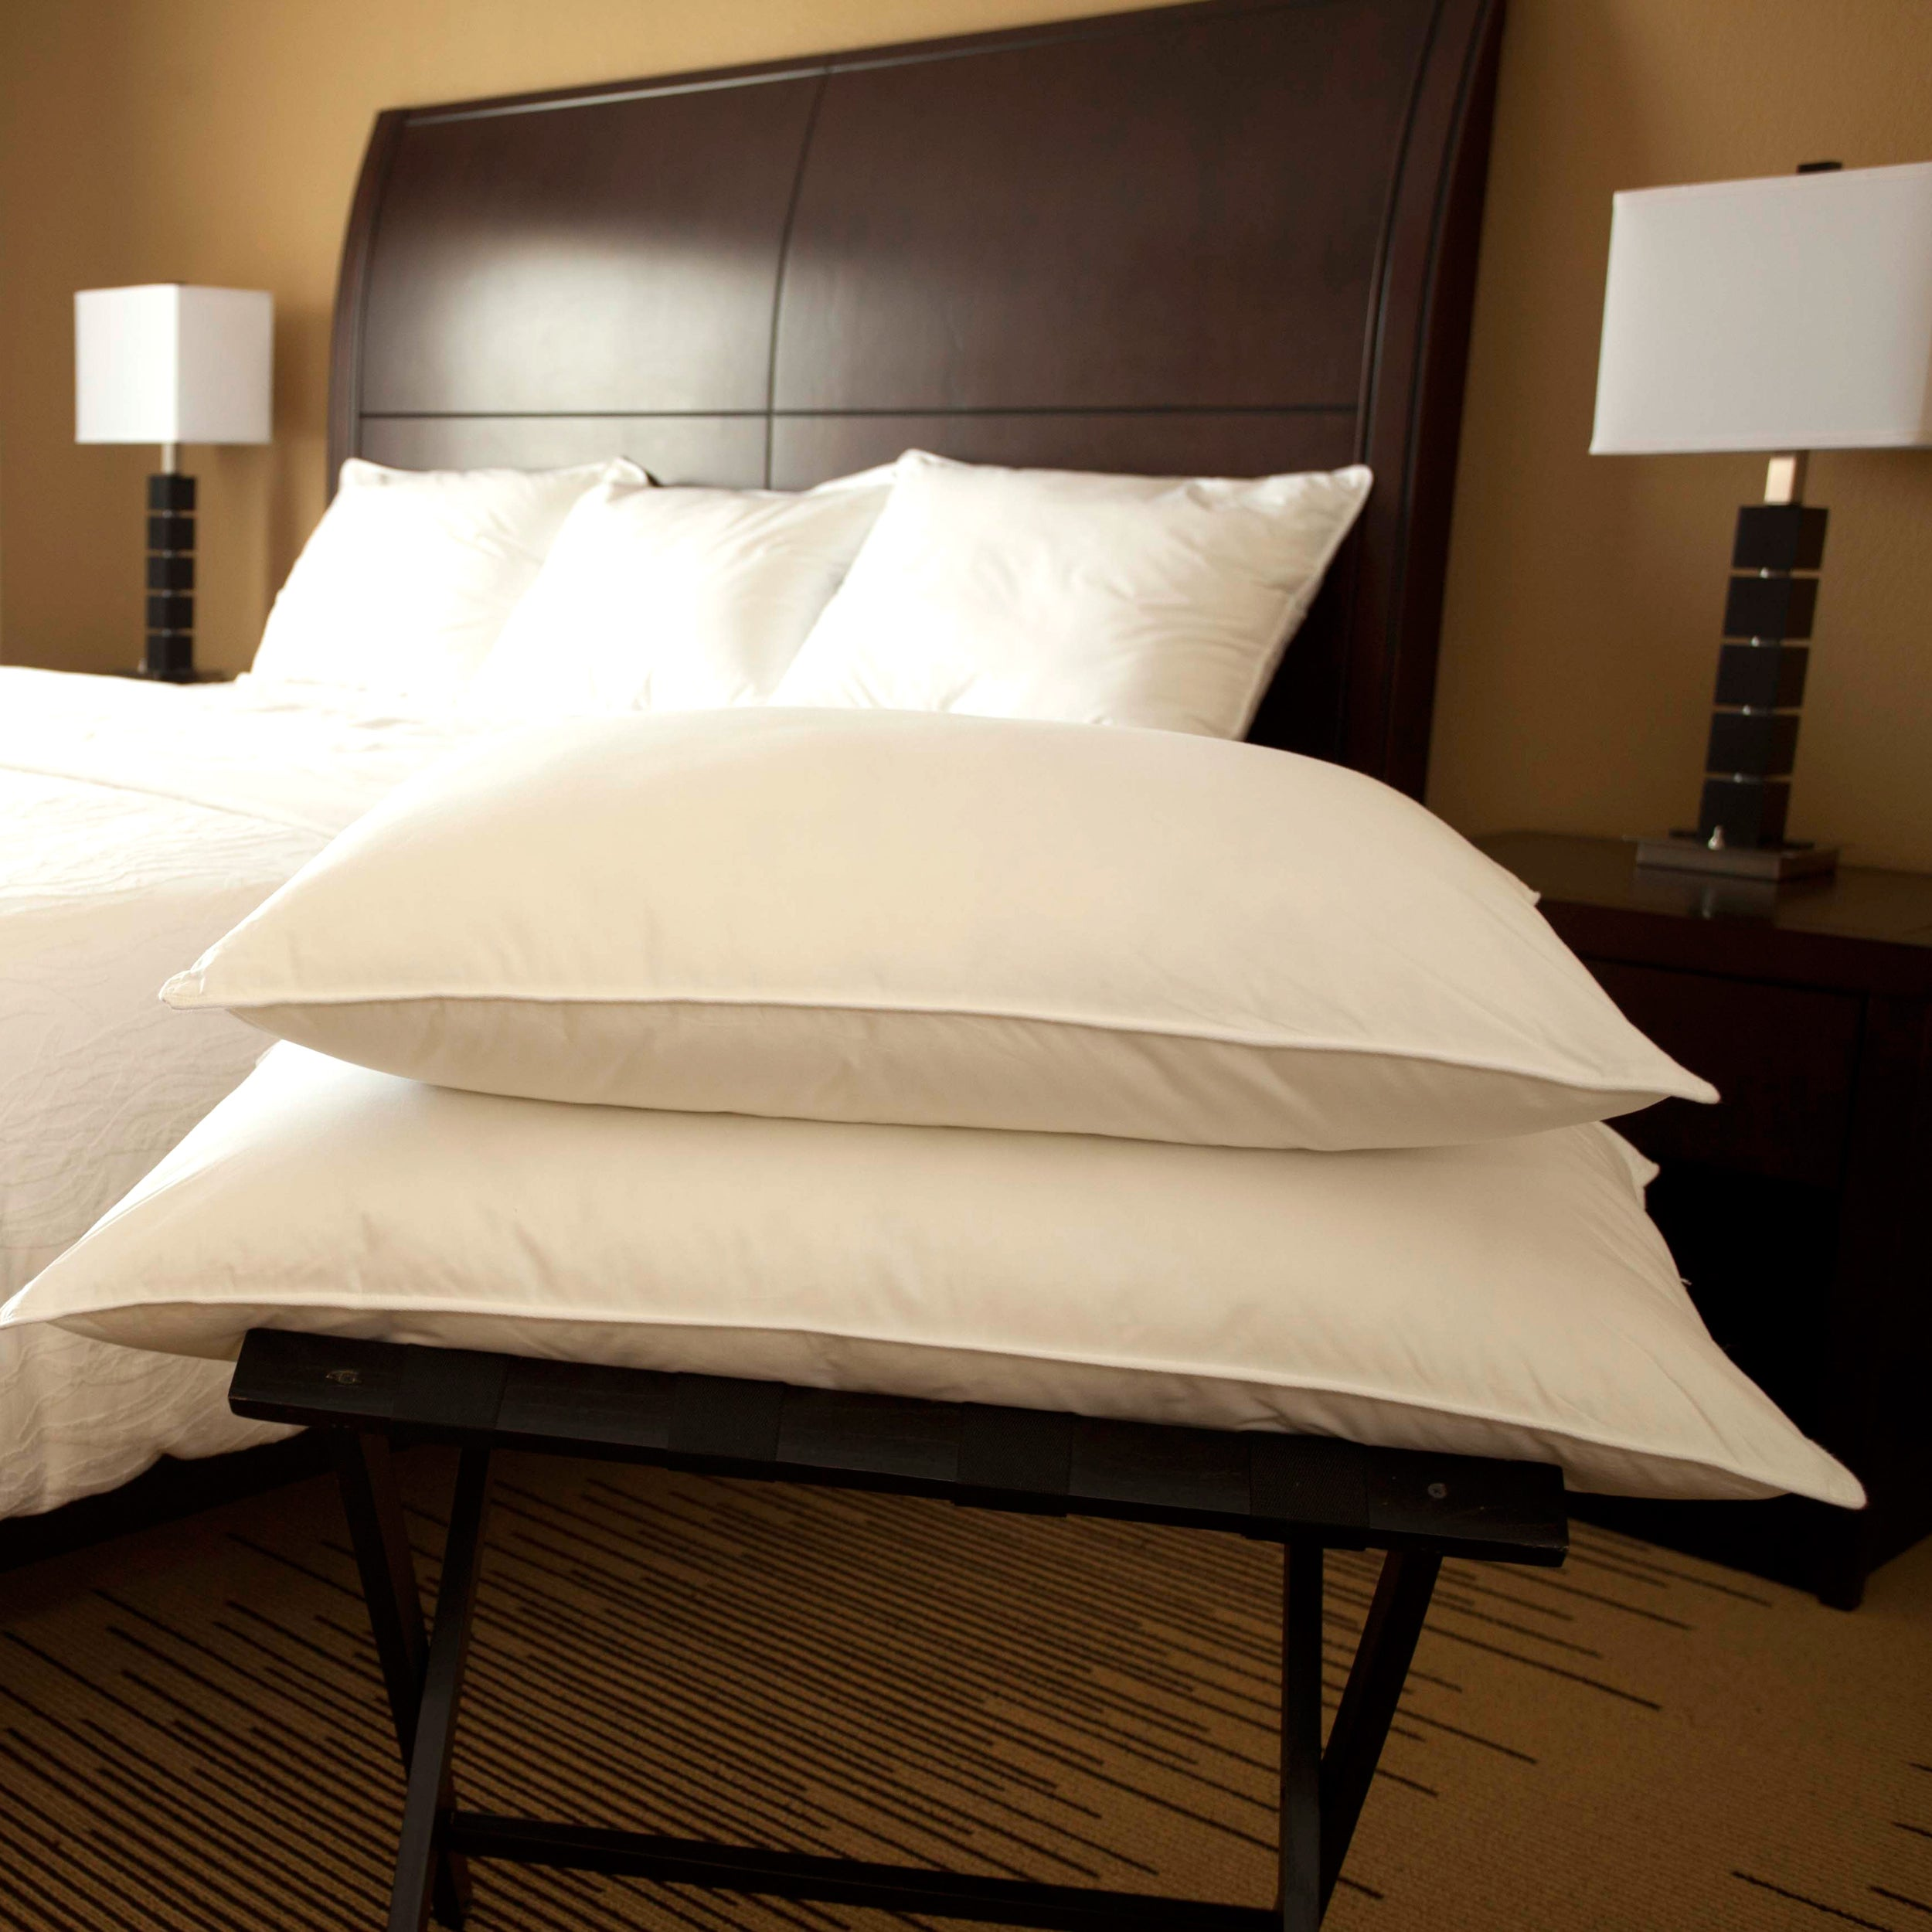 Overstock.com Hotel Style White Goose Down Chamber Pillow